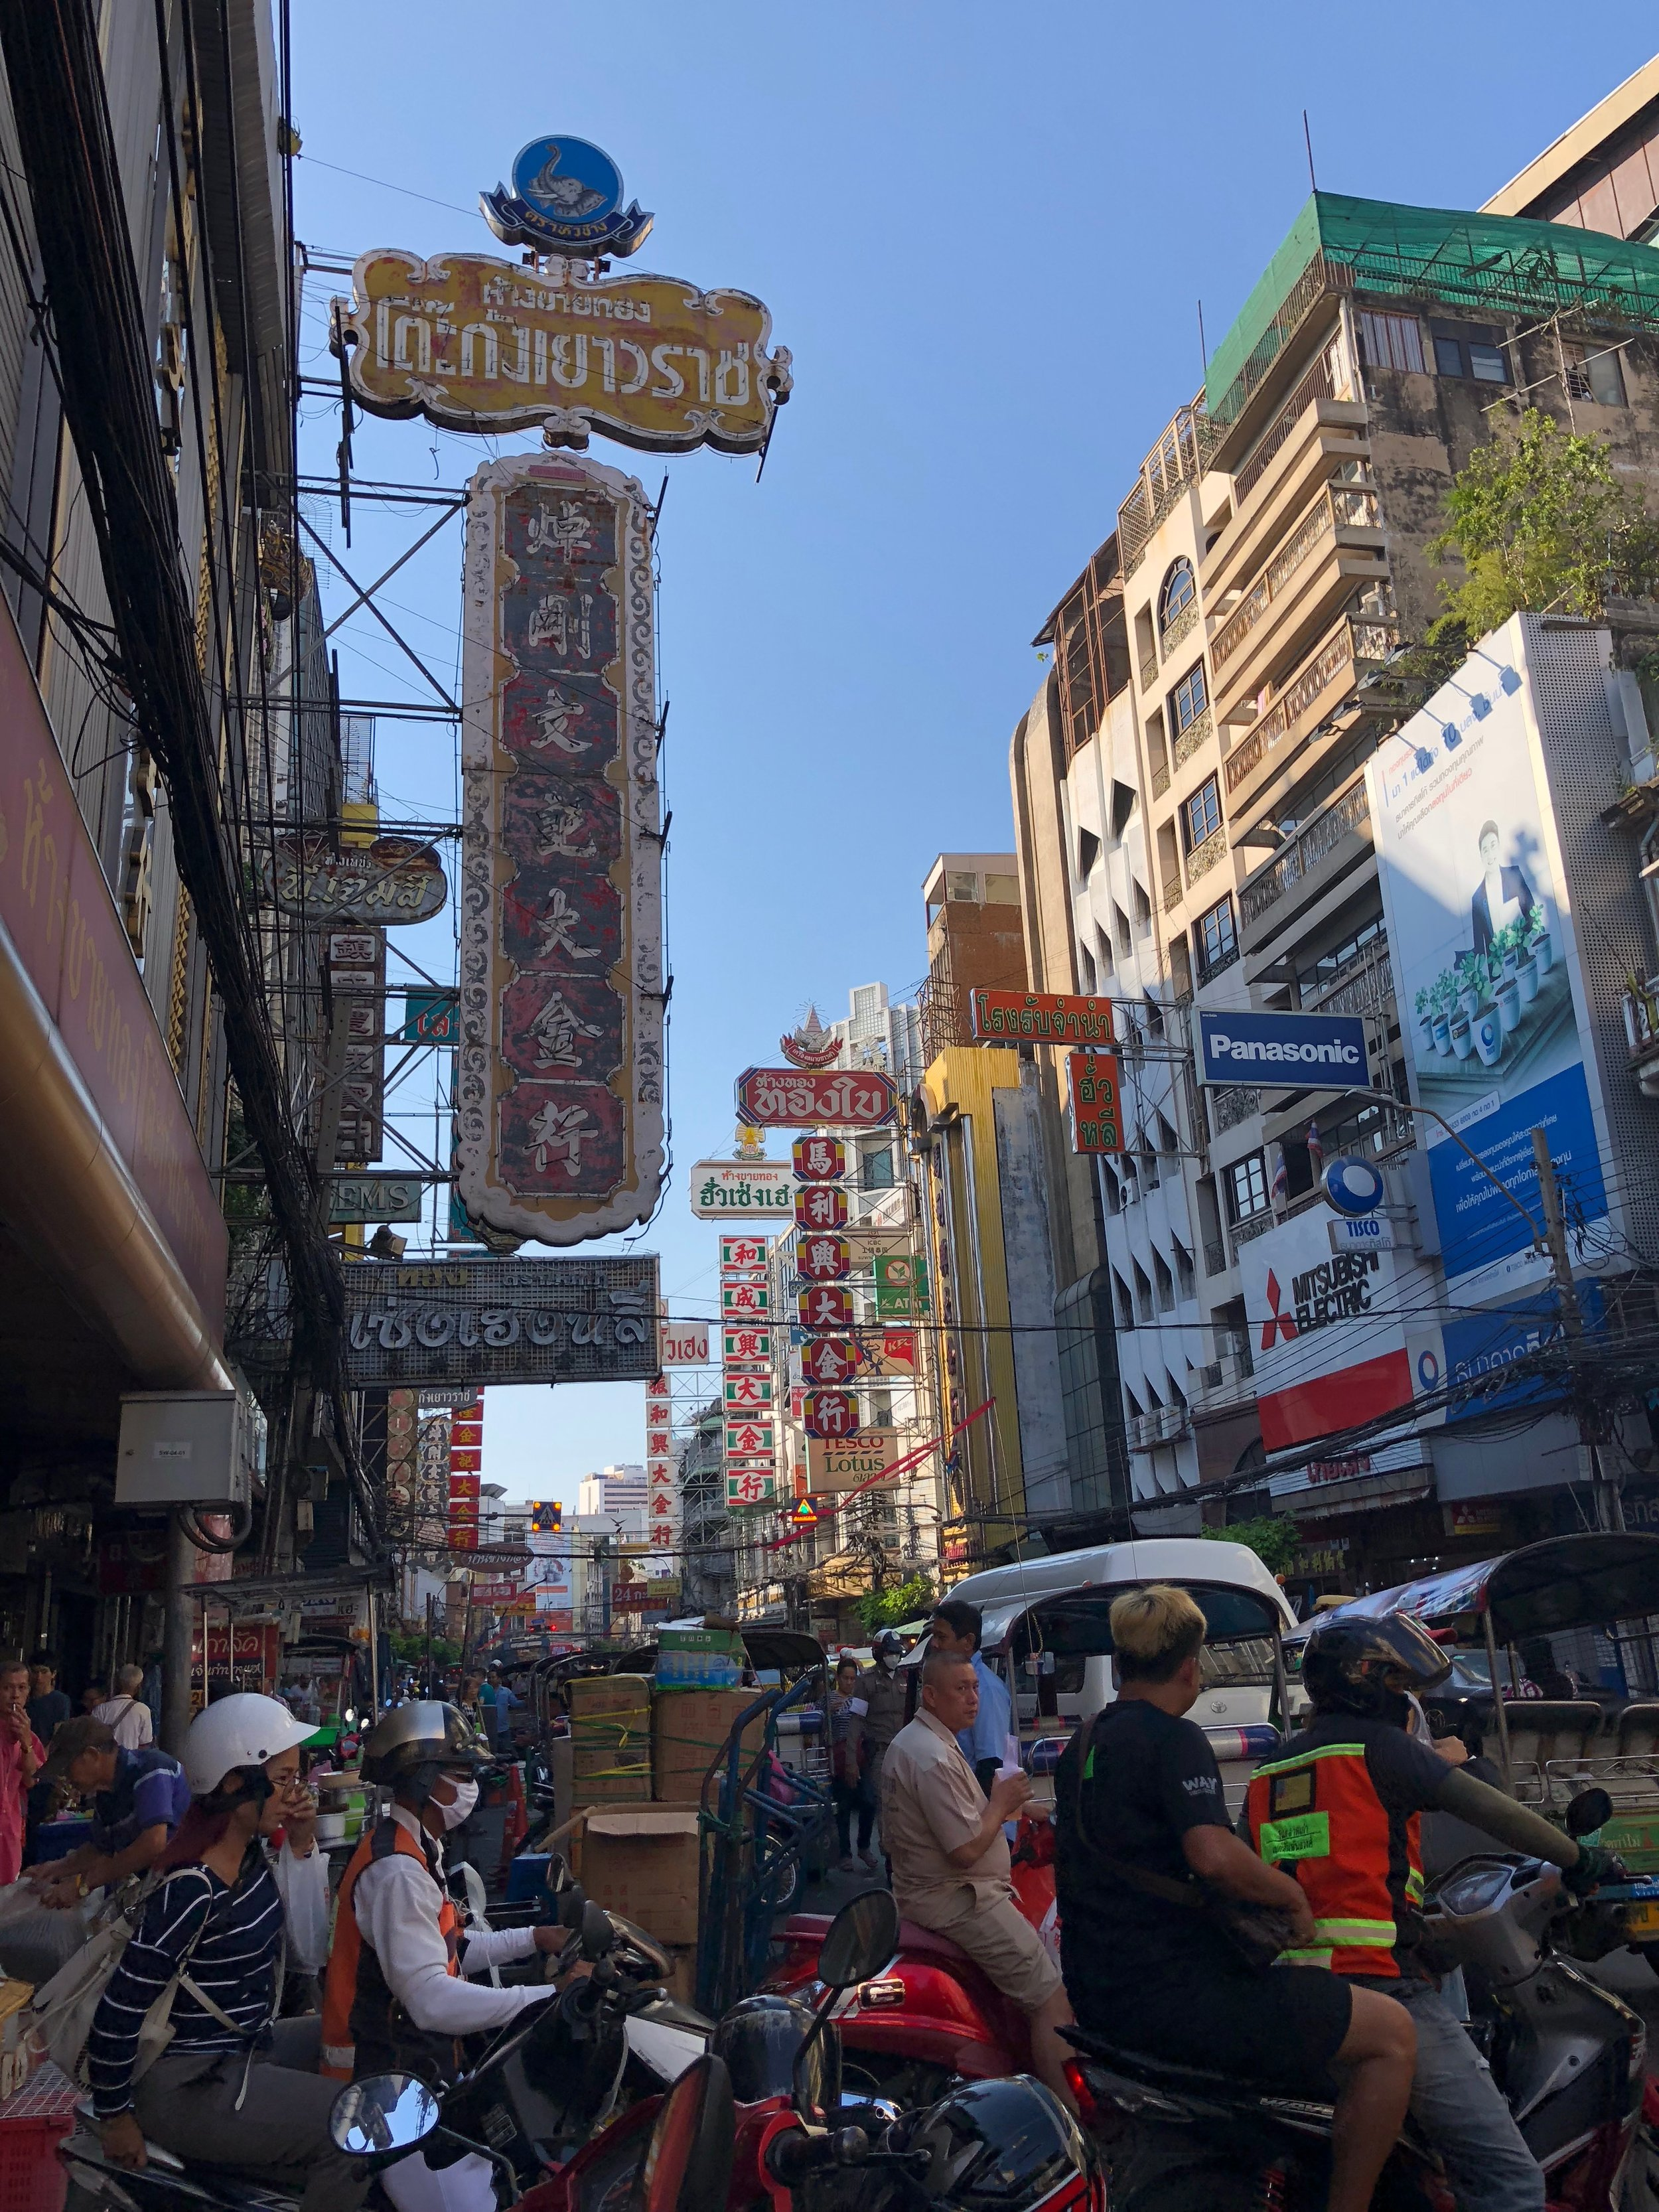 It's amazing how almost every major city I've been to in the world has some kind of Chinatown.